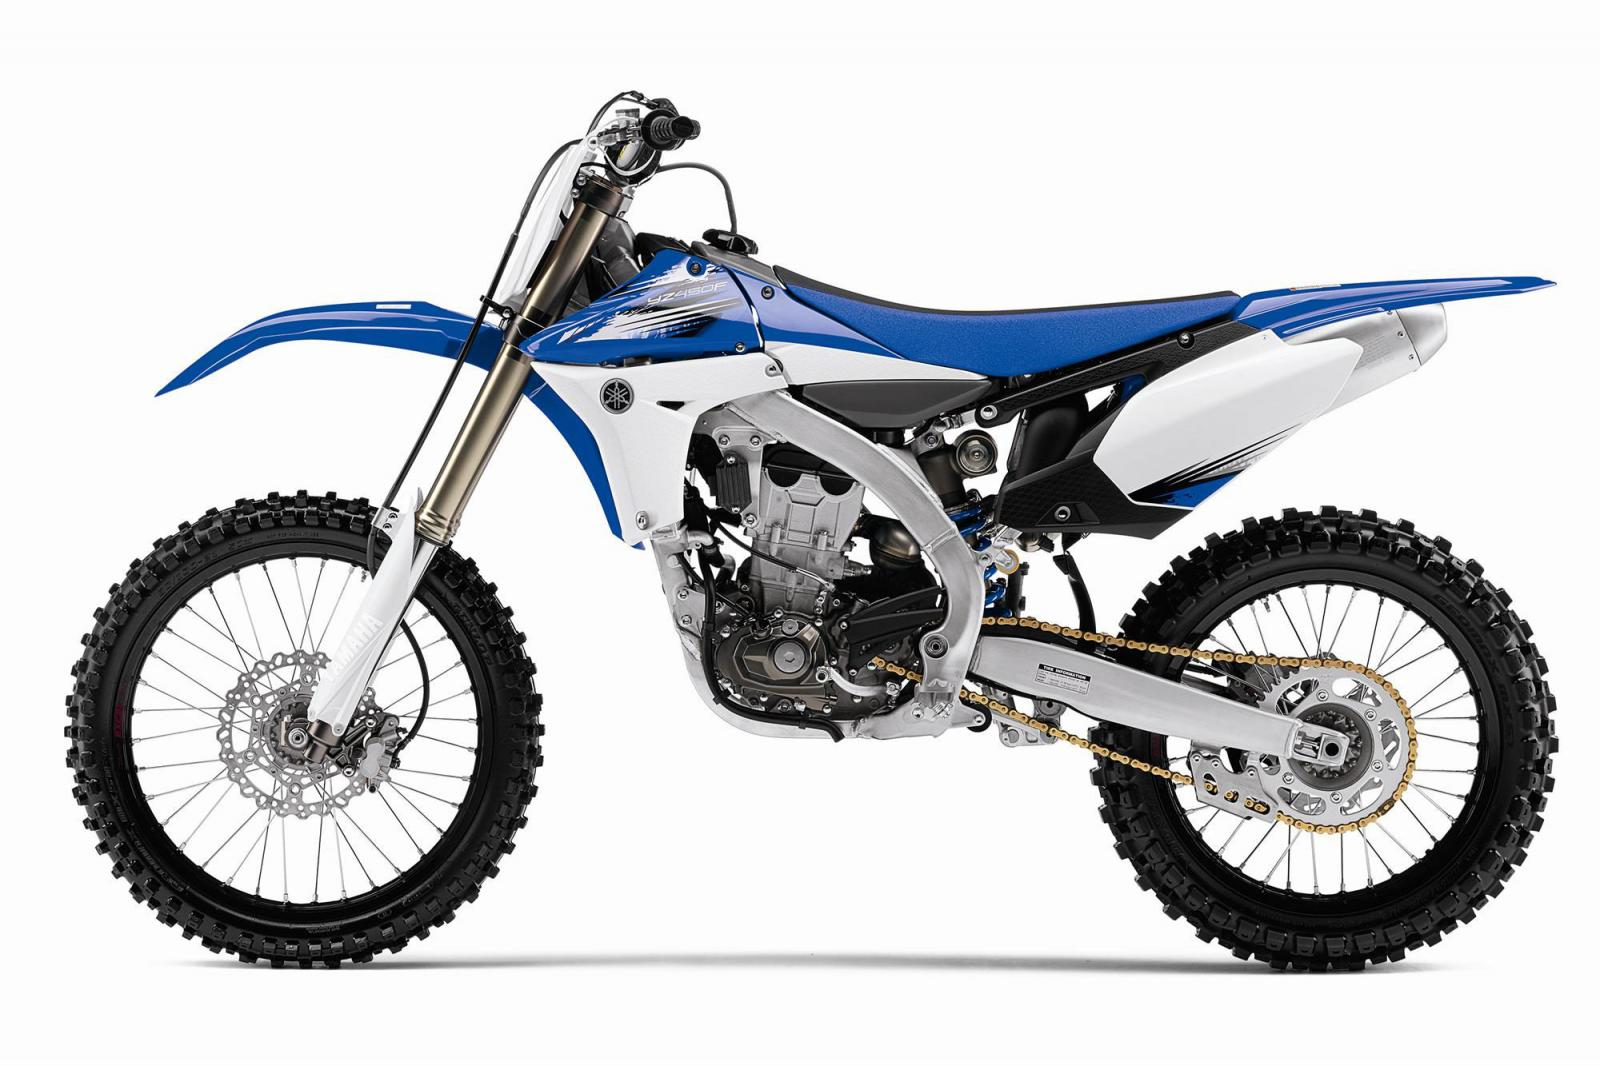 2004 yamaha yz 450 f moto zombdrive com. Black Bedroom Furniture Sets. Home Design Ideas